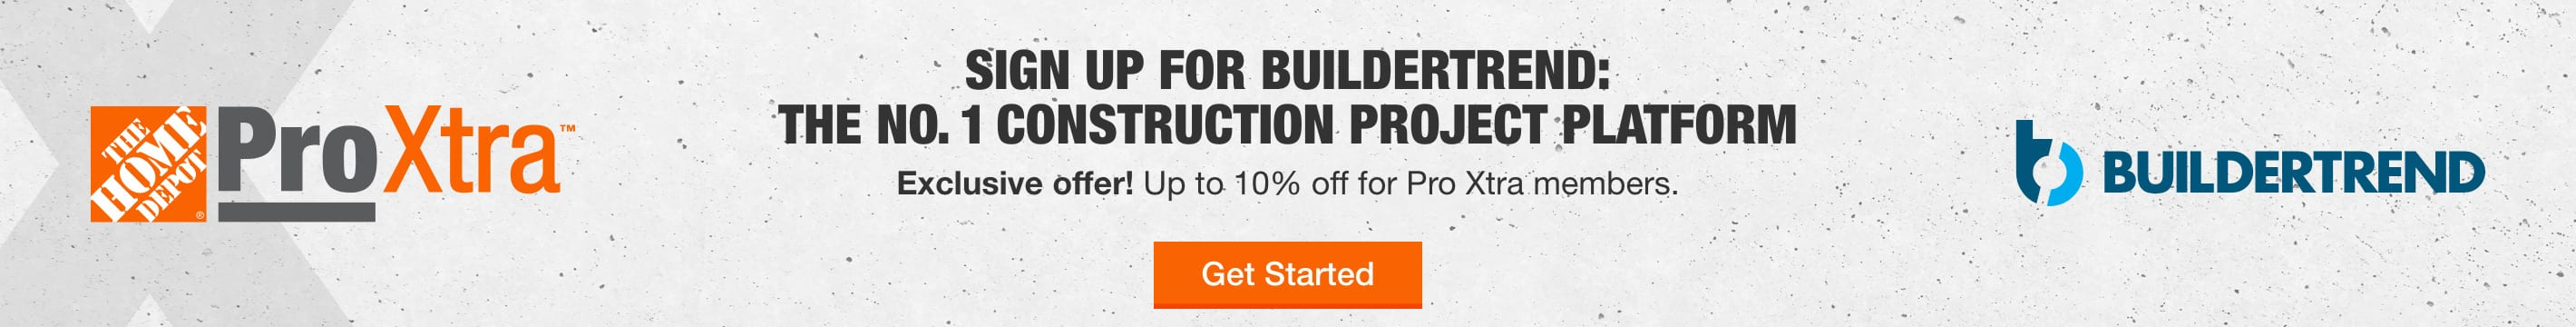 Sign up for BUILDERTREND; The NO. 1 construction project platform